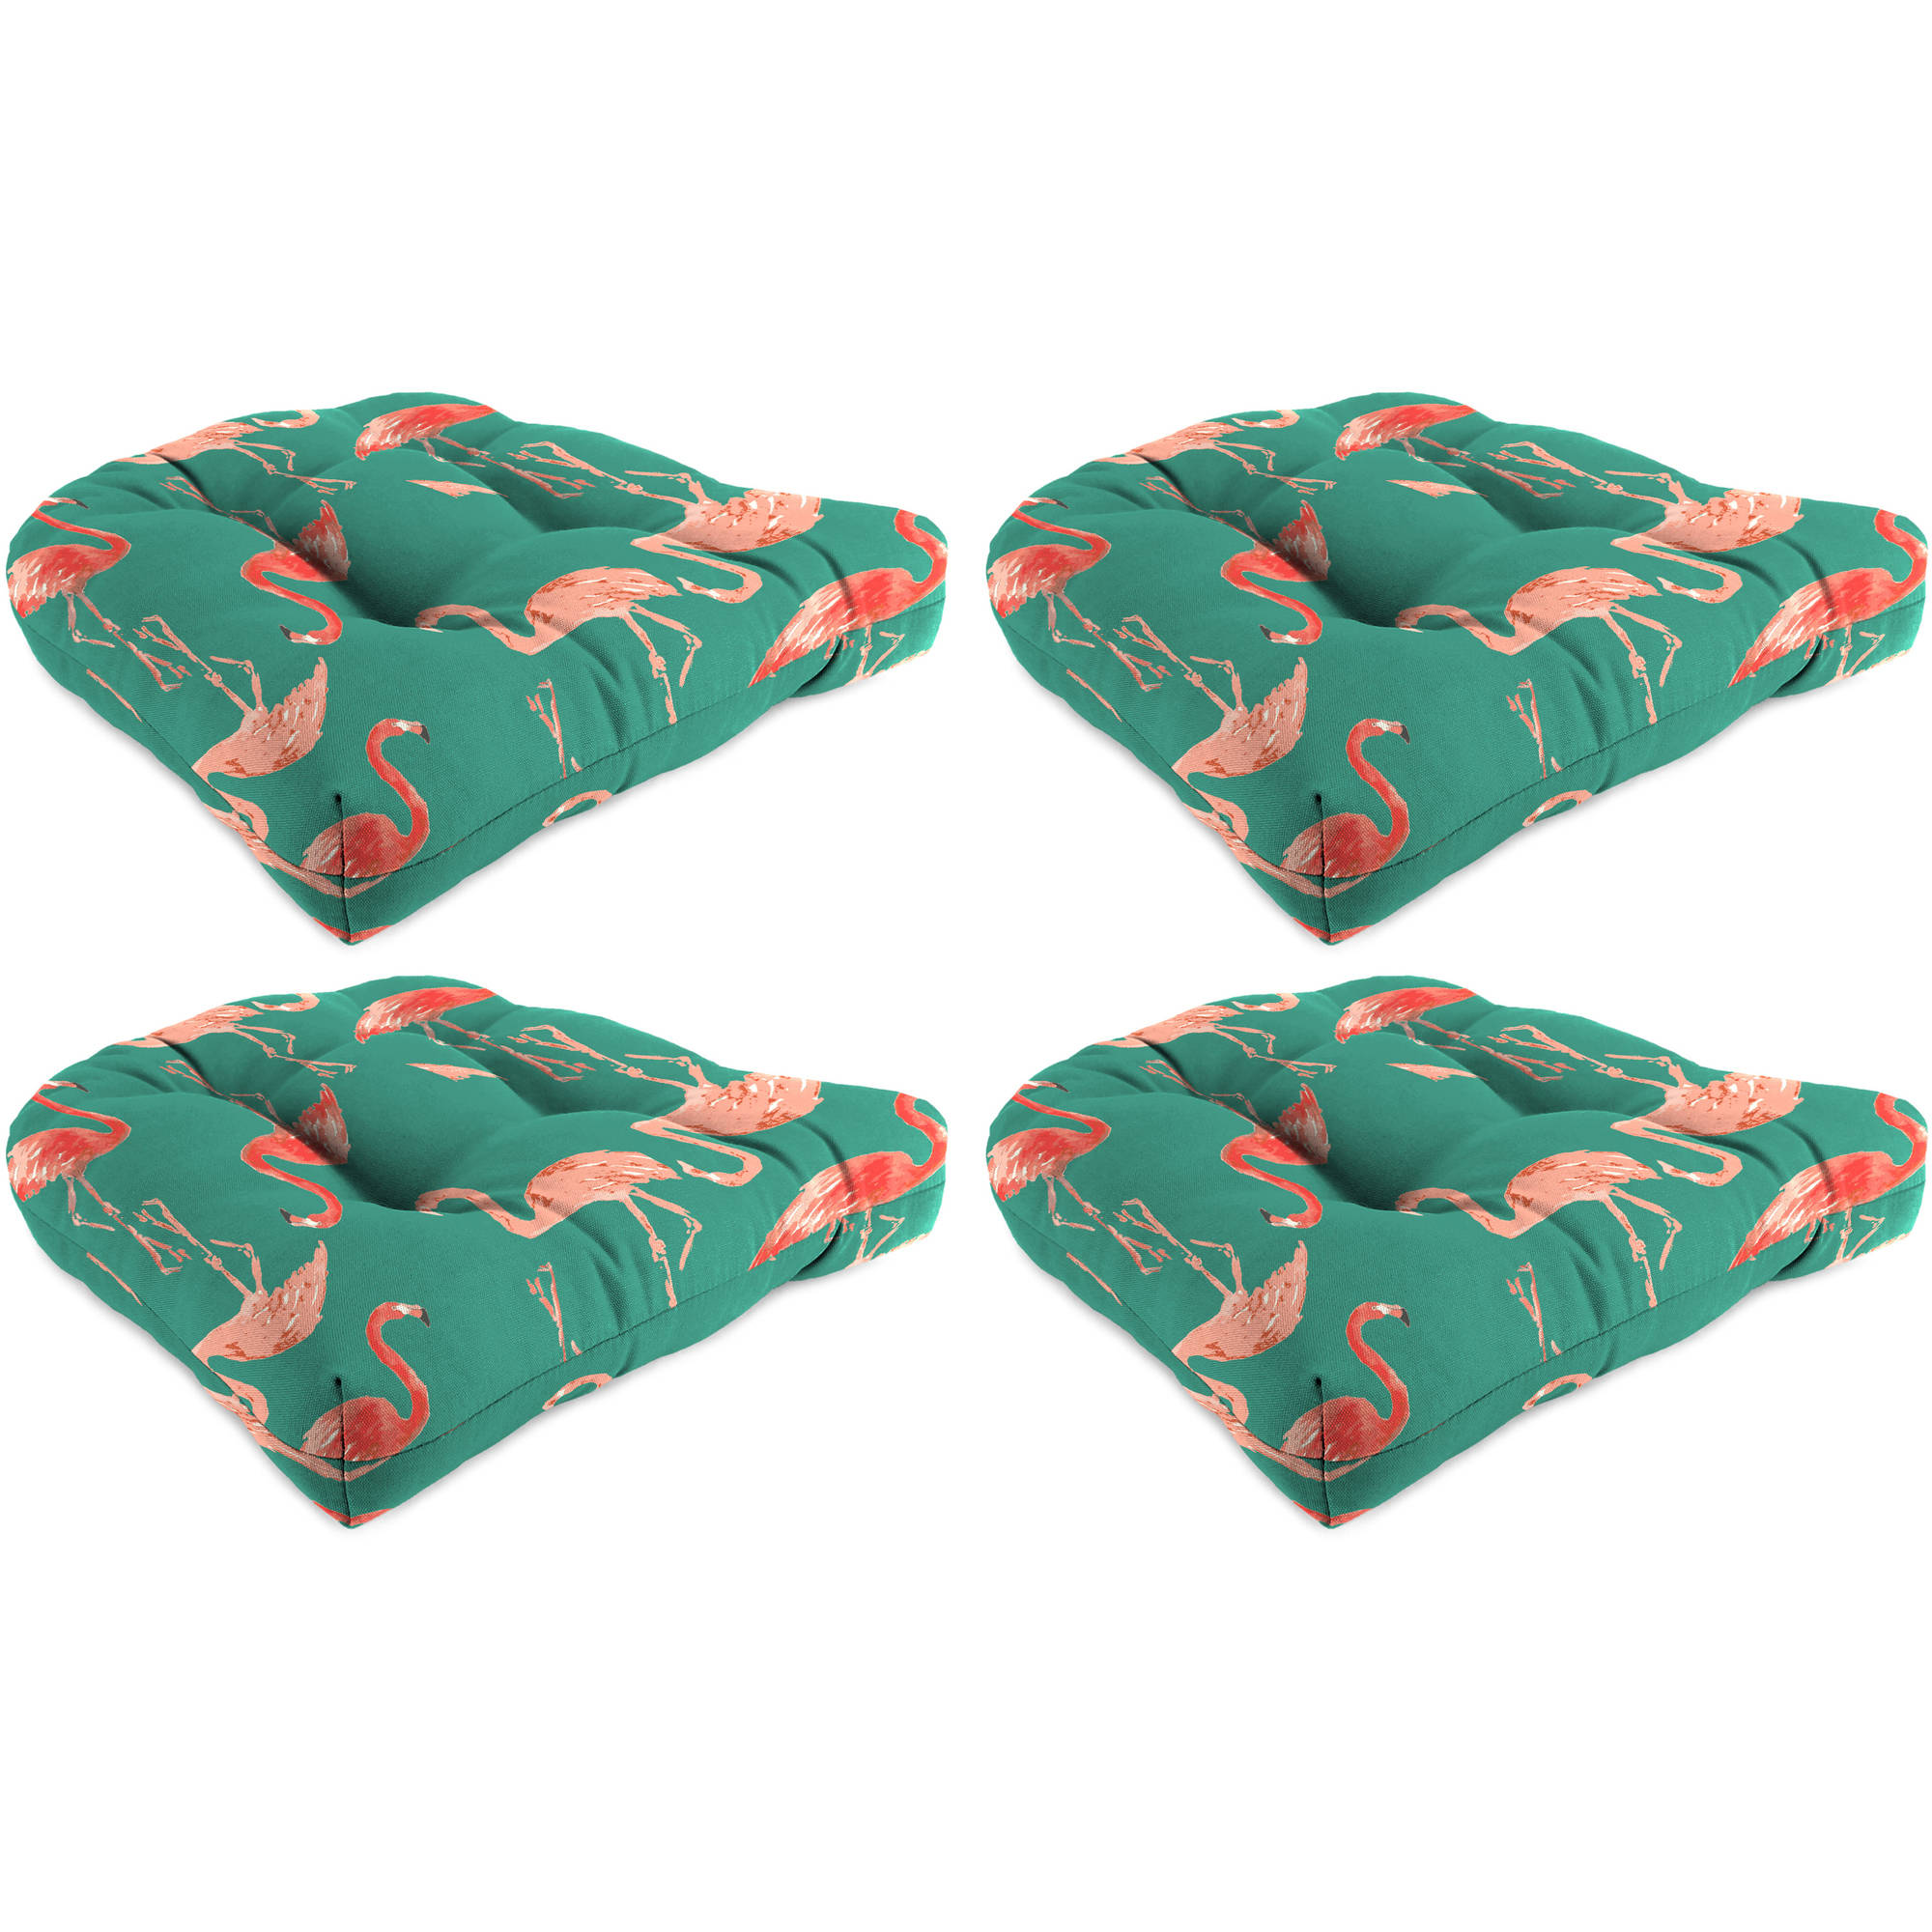 Charming Jordan Manufacturing Outdoor Patio Tufted Wicker Chair Cushions, Flamingo  Gem, Set Of 4